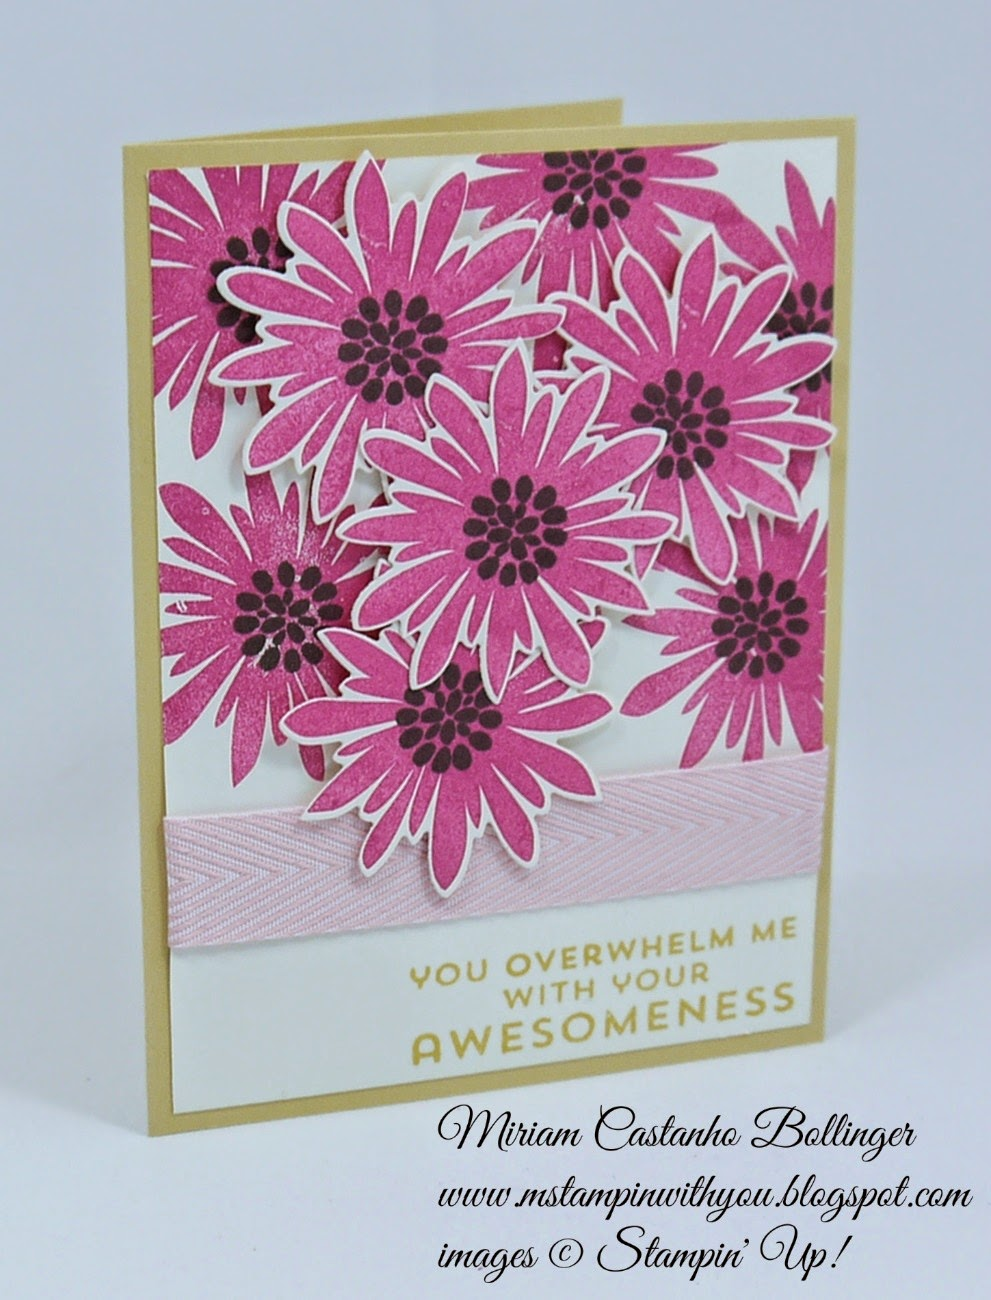 Miriam Castanho Bollinger, #mstampinwithyou, stampin up, demonstrator, dsc125, thank you, flower patch bundle, big shot, su